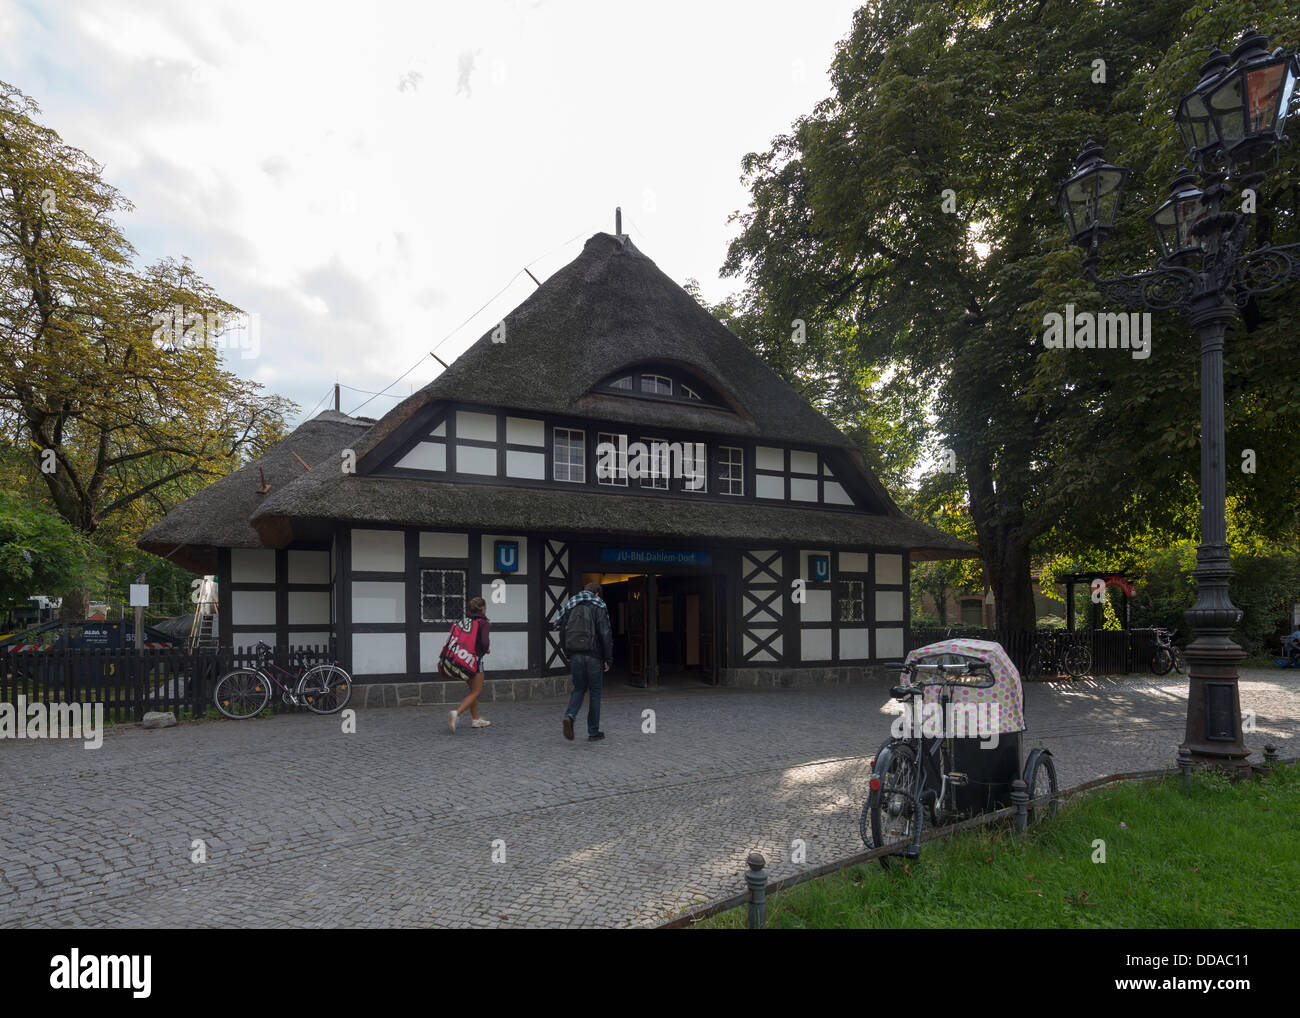 thatched roof of Dahlem-Dorf, Berlin U-Bahn station, Germany - Stock Image